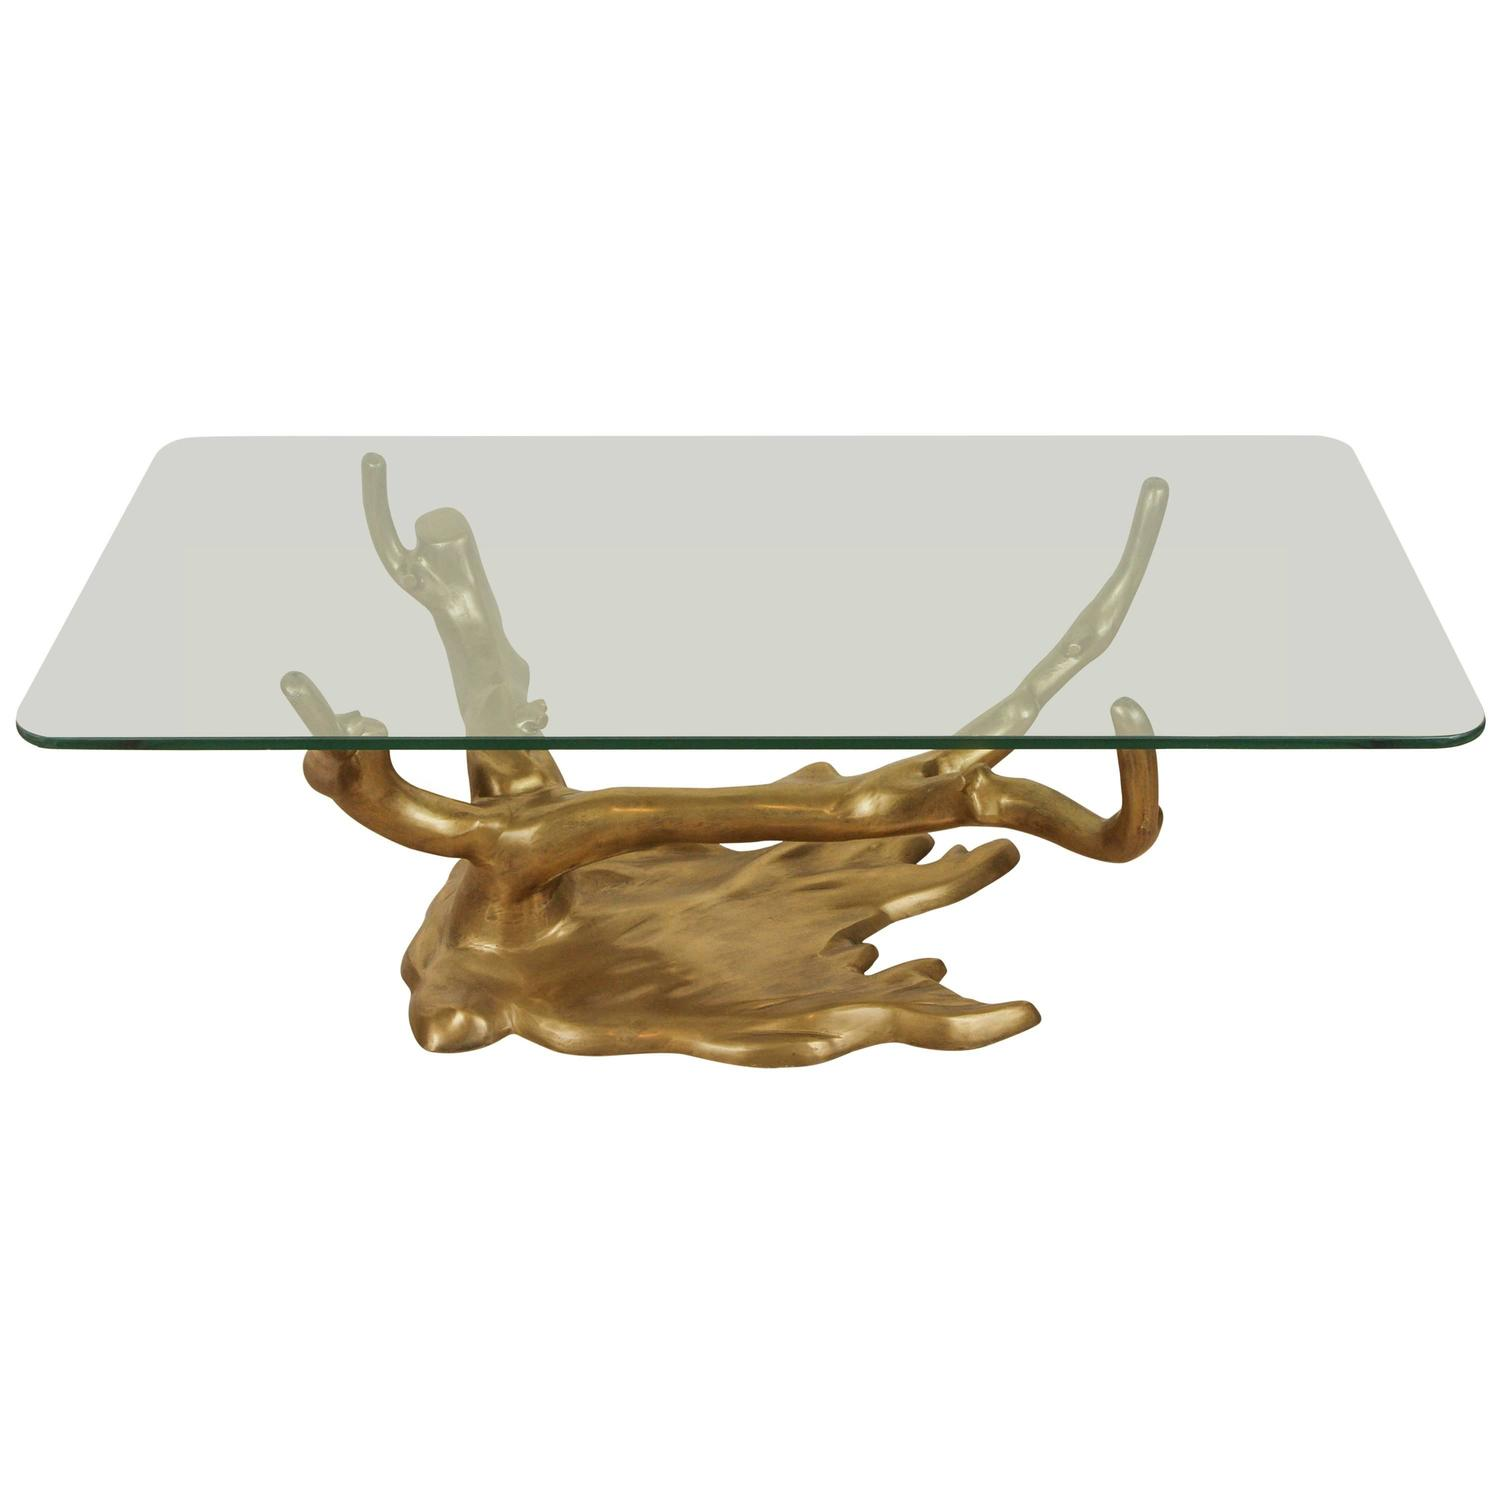 Cast Brass Tree Coffee Table With Glass Top By Willy Daro At 1stdibs